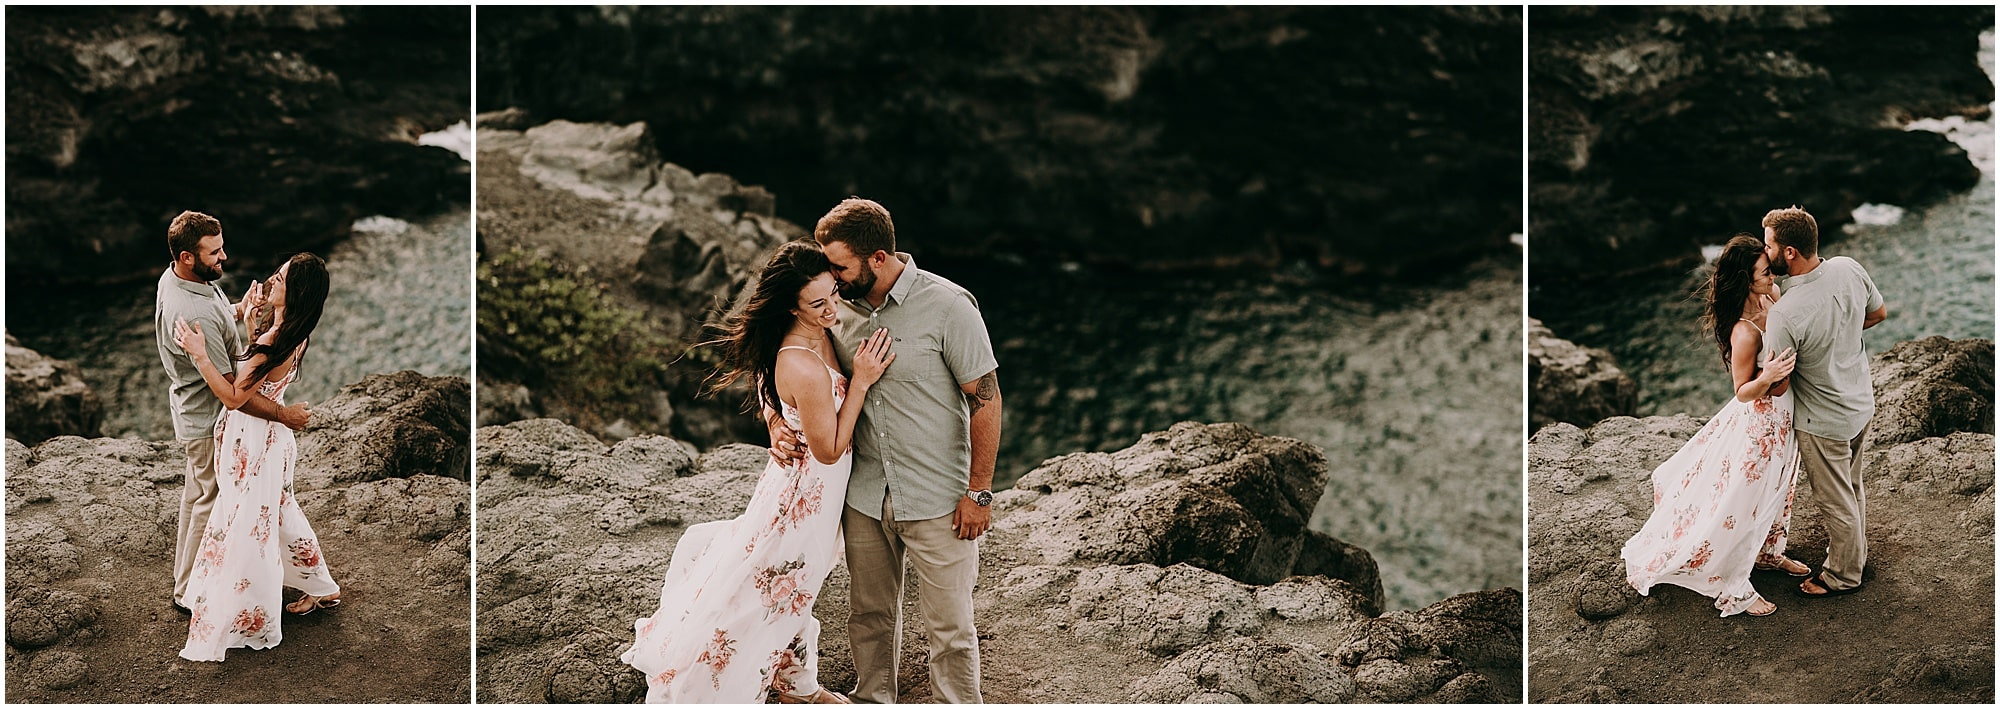 Maui engagement photographer4